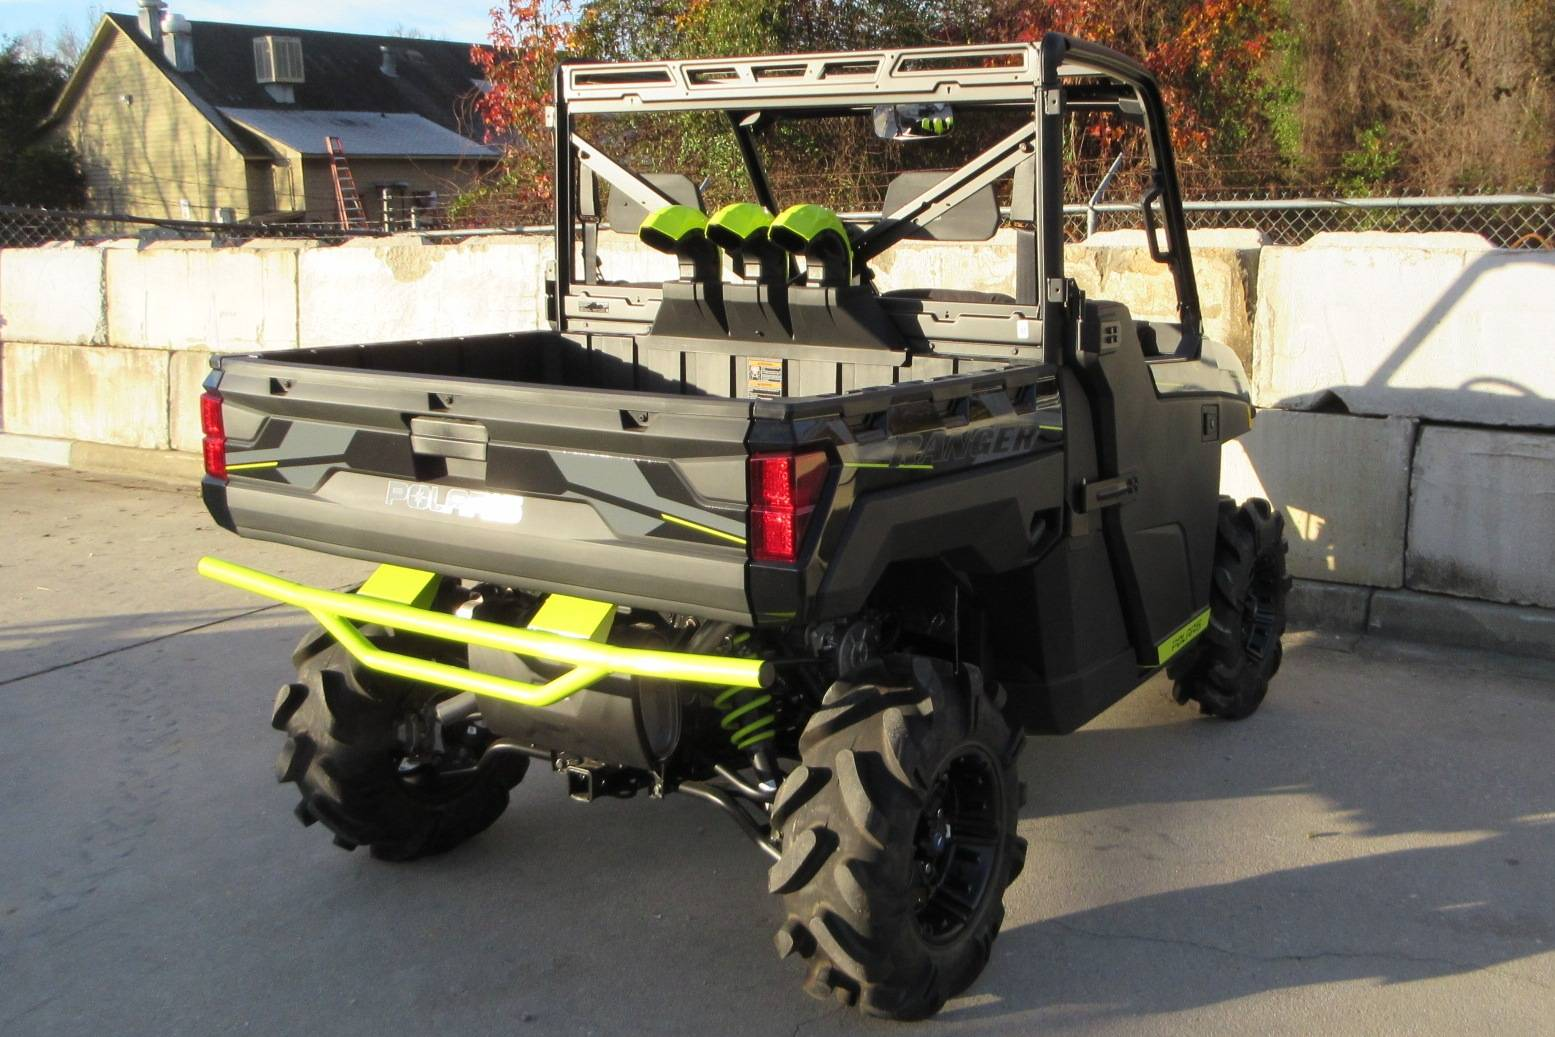 2020 Polaris Ranger XP 1000 High Lifter Edition in Sumter, South Carolina - Photo 8